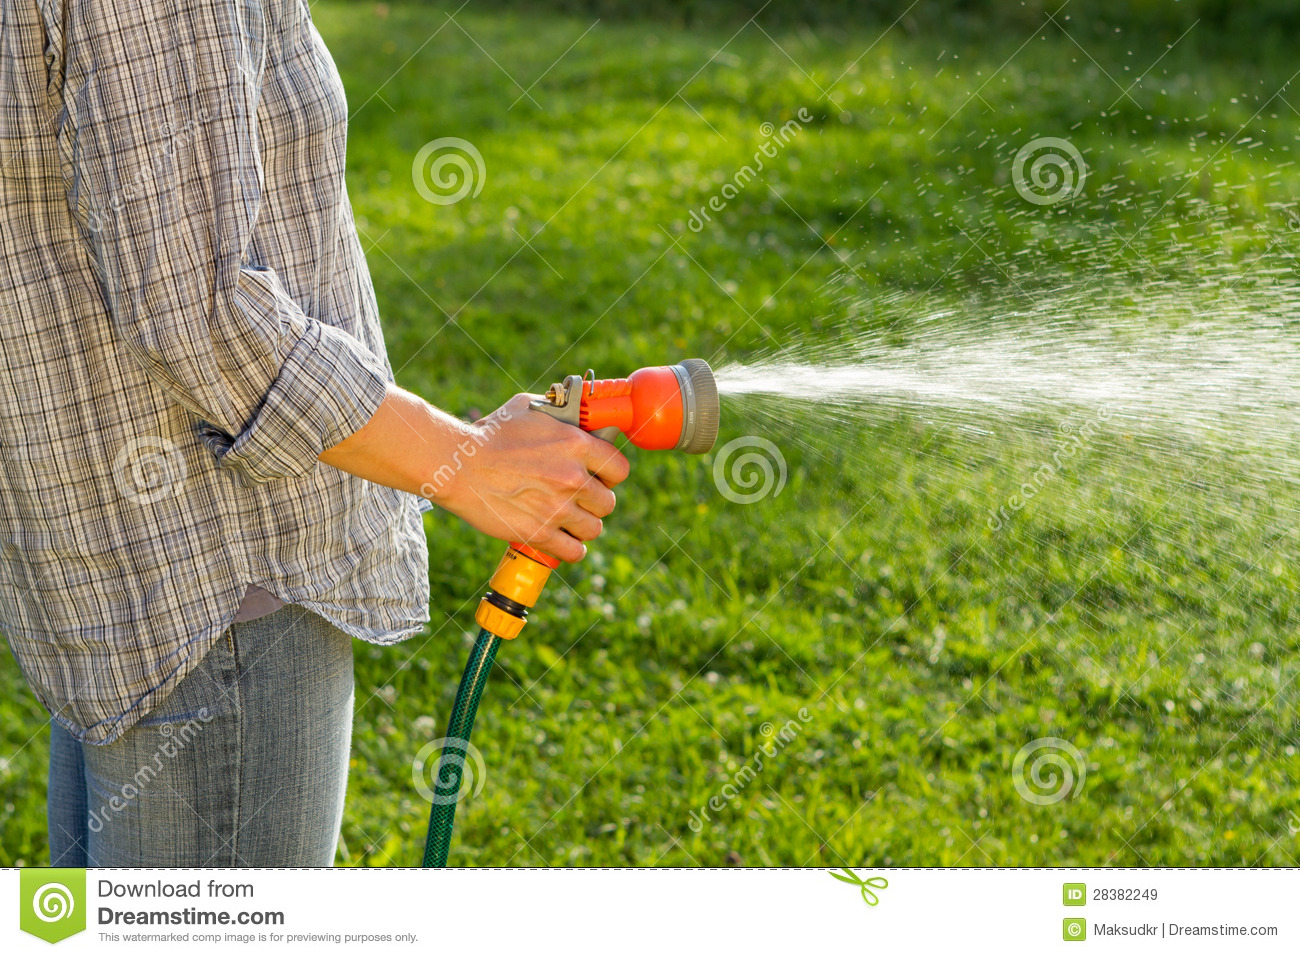 Watering The Lawn Royalty Free Stock Images   Image  28382249